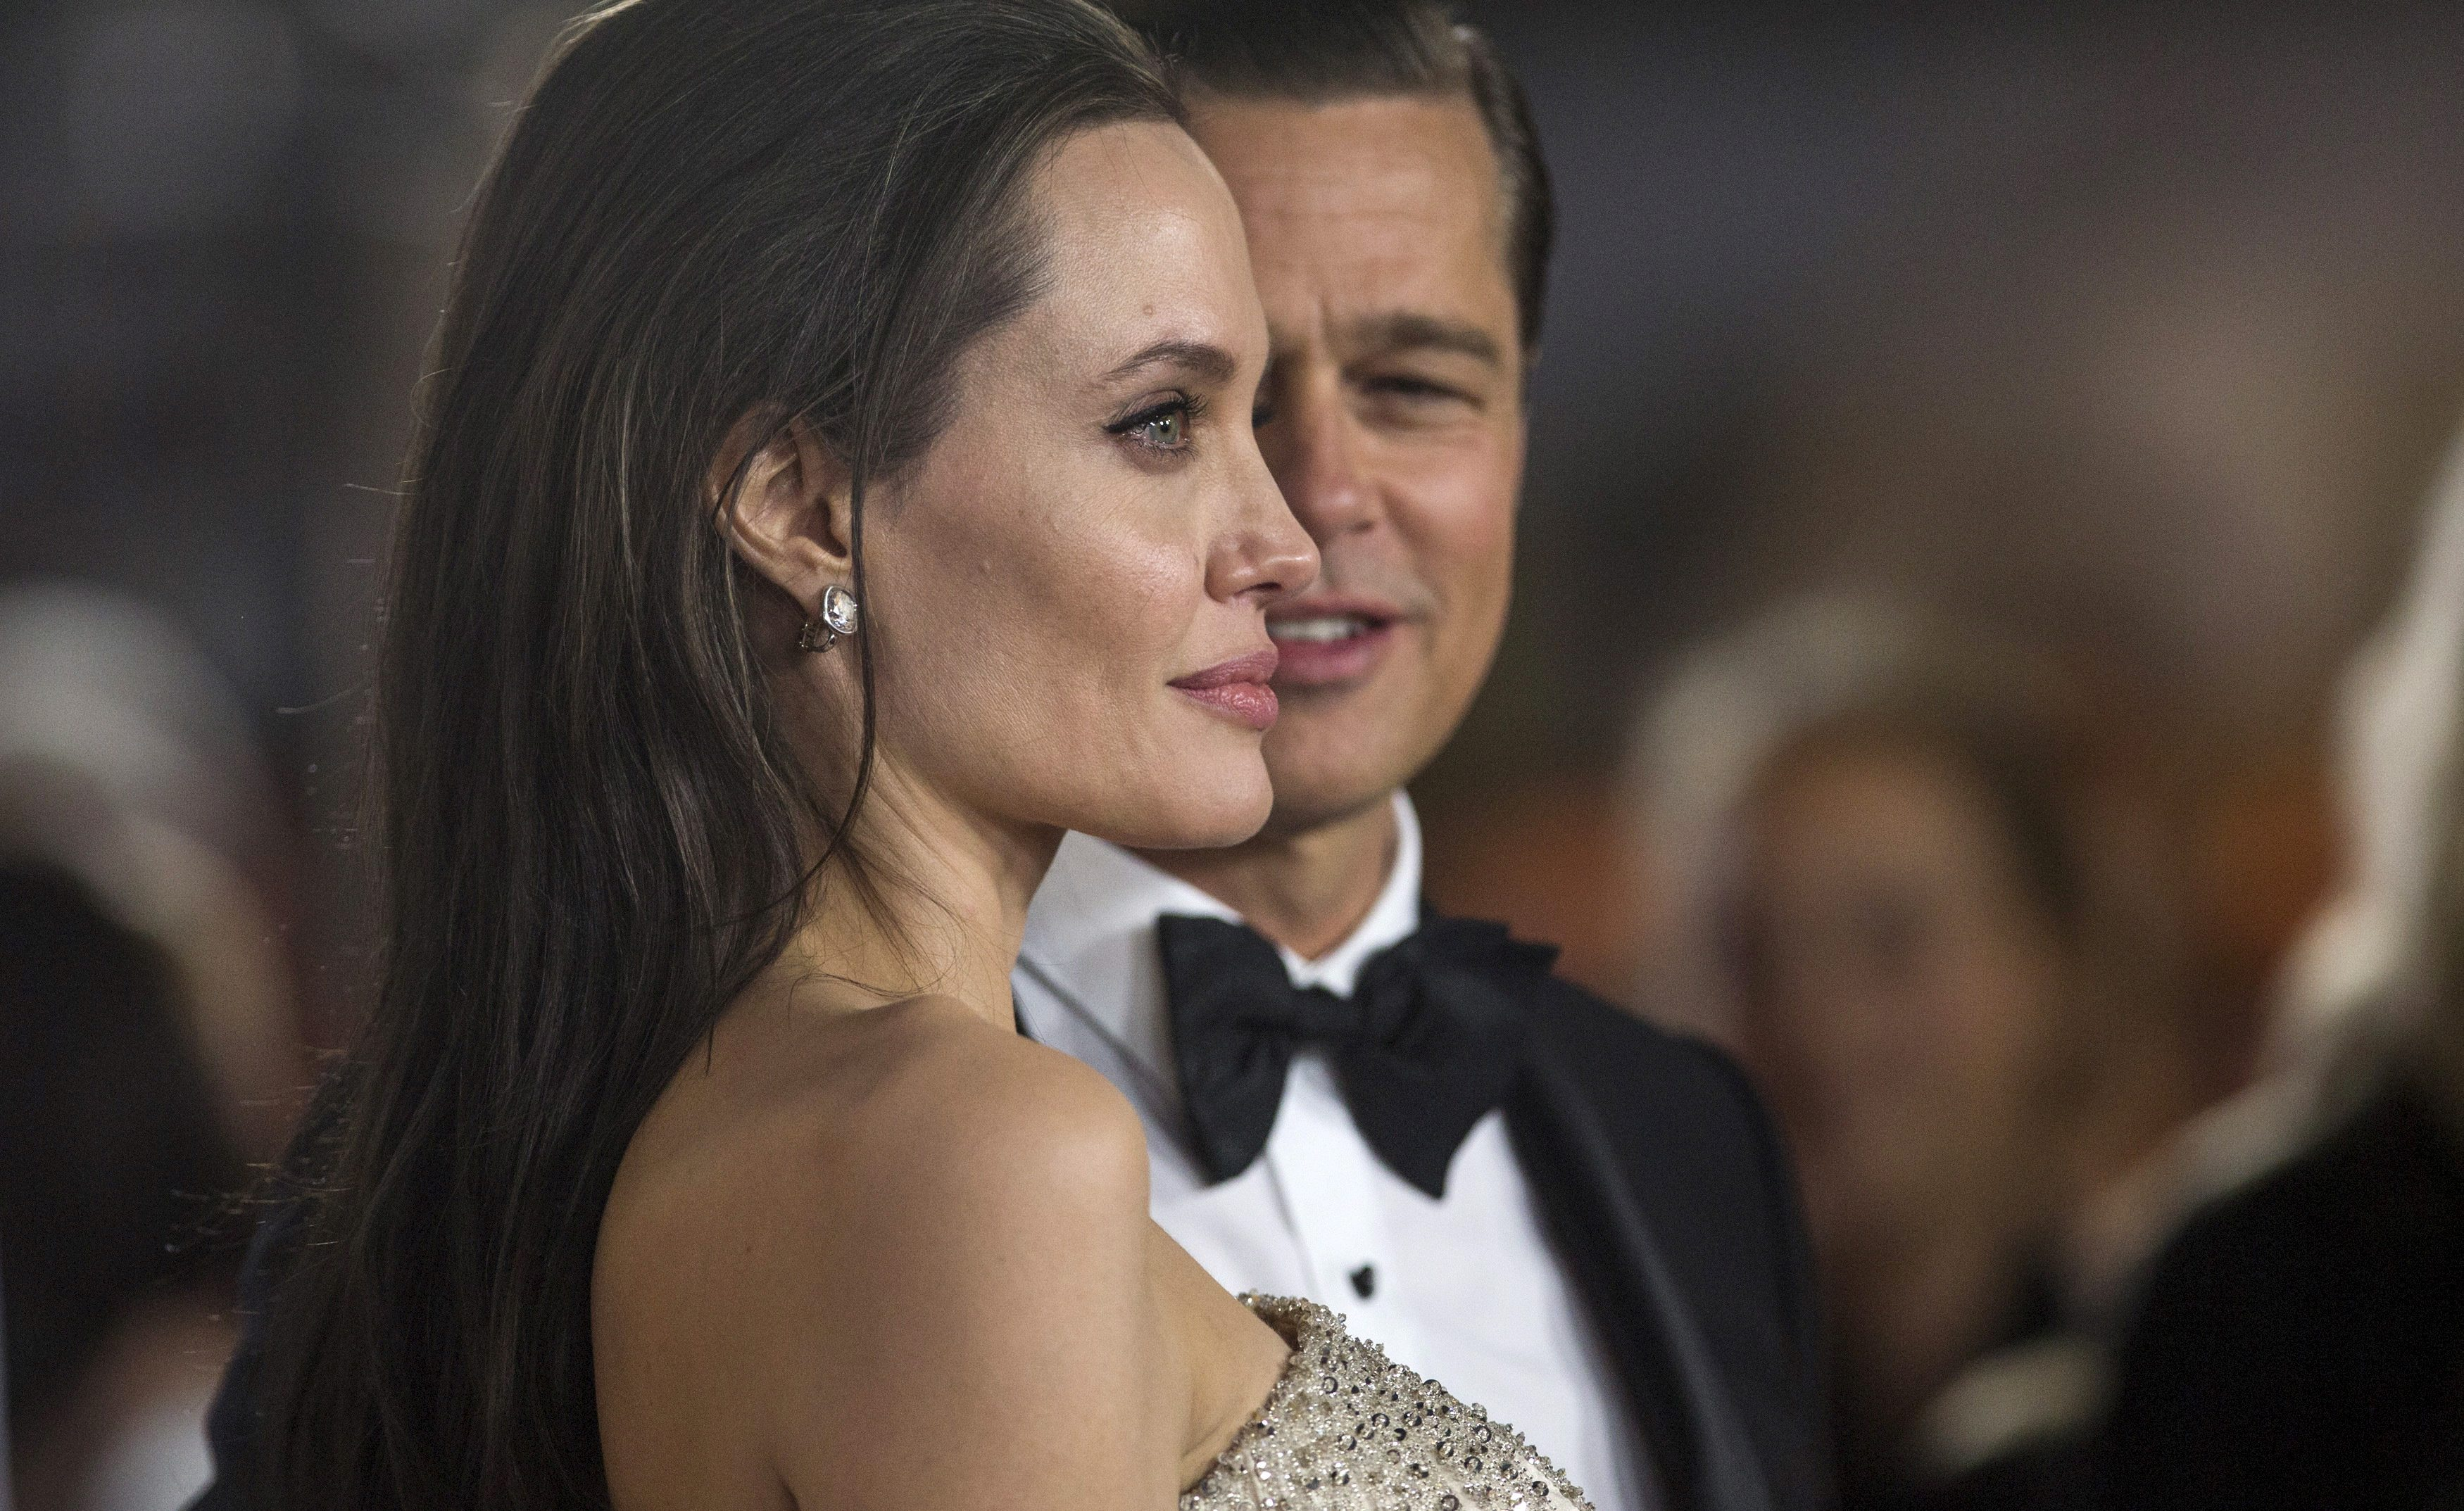 Director and cast member Angelina Jolie and her husband and co-star Brad Pitt pose at the premiere of